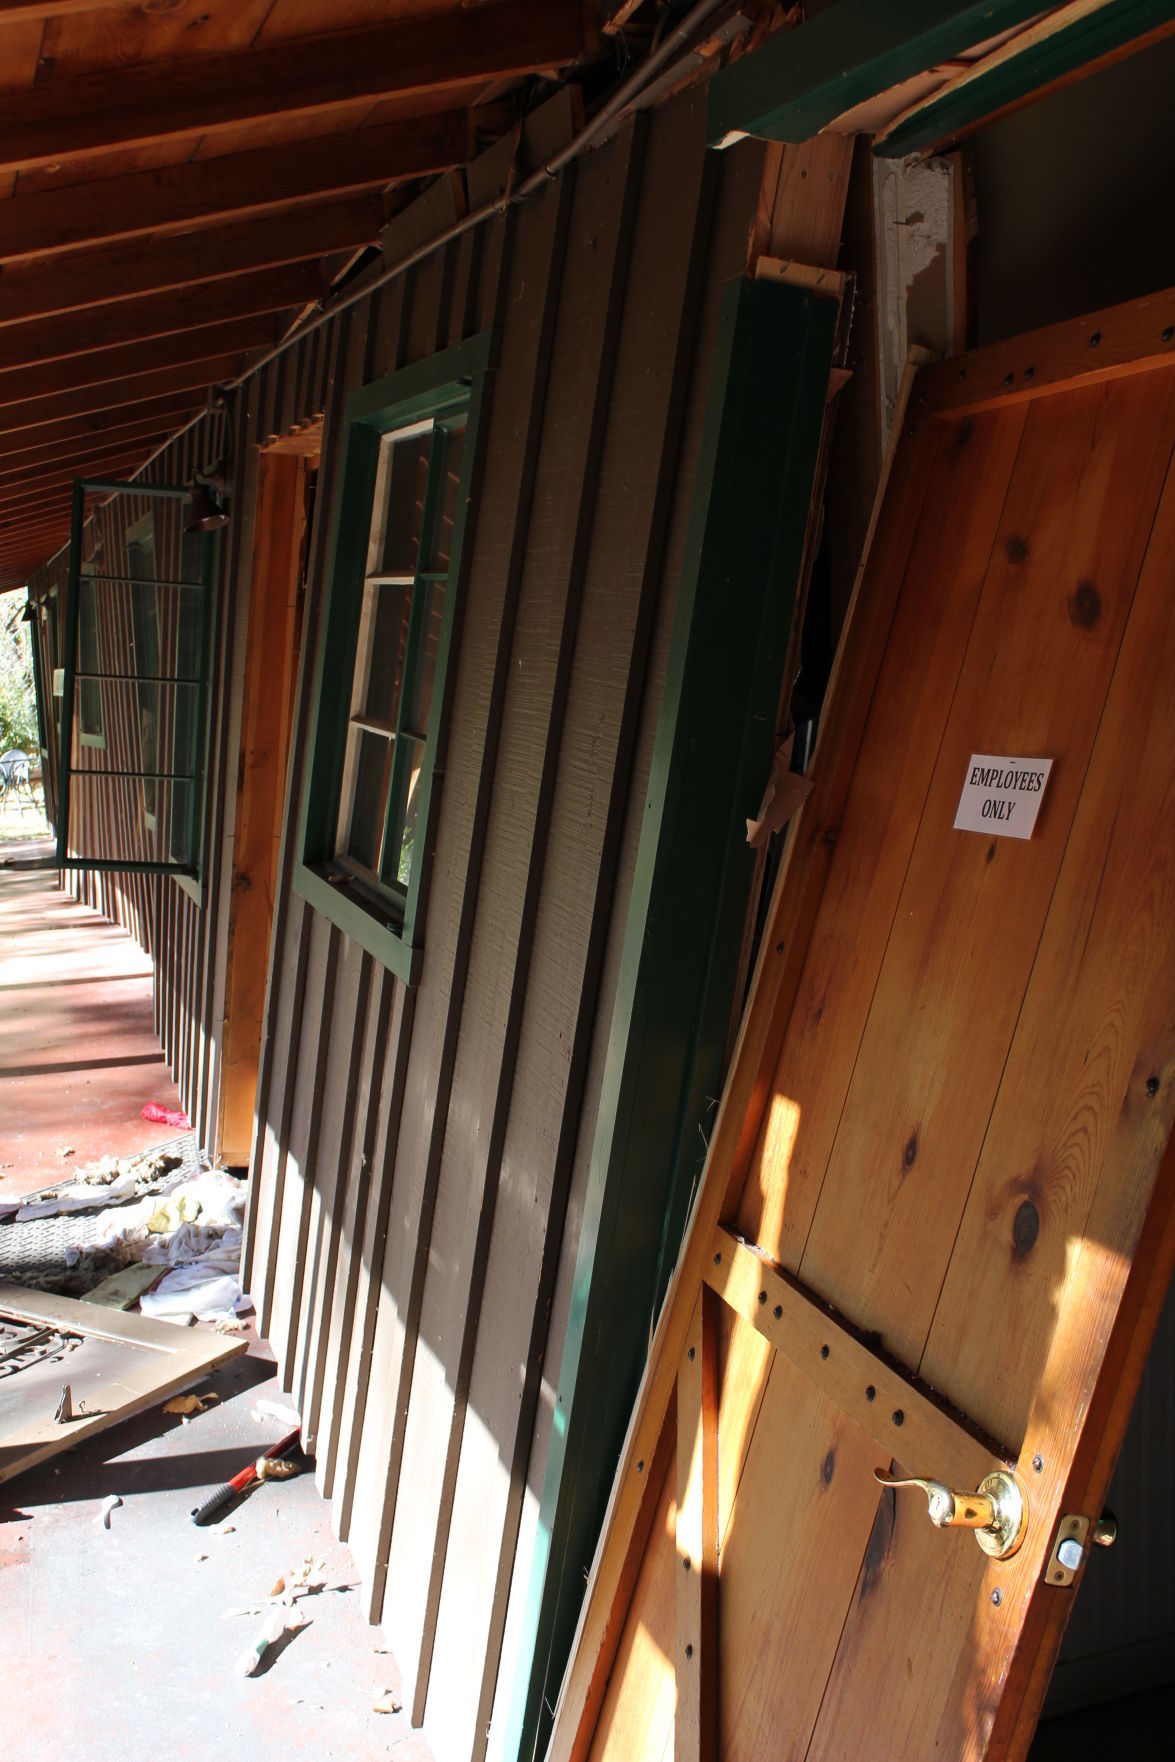 Propane explosion burns 1 at Butterfly Inn property | Local ...